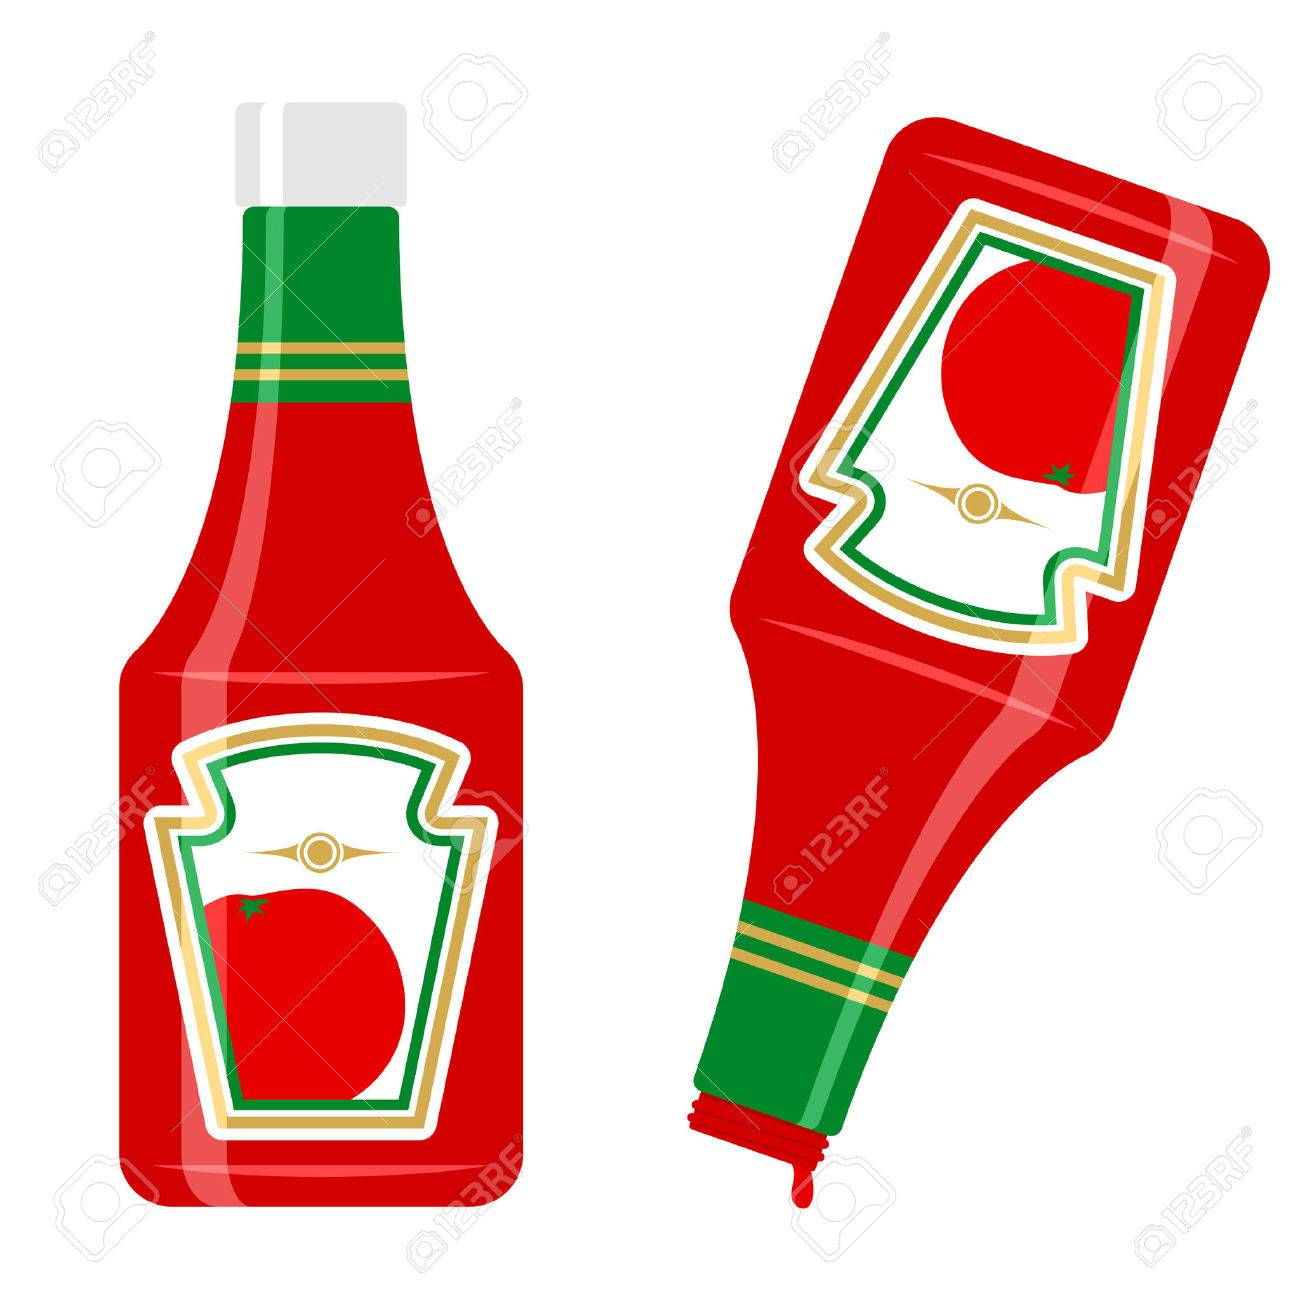 ketchup bottle royalty free cliparts vectors and stock rh 123rf com clipart ketchup bottle ketchup clipart black and white